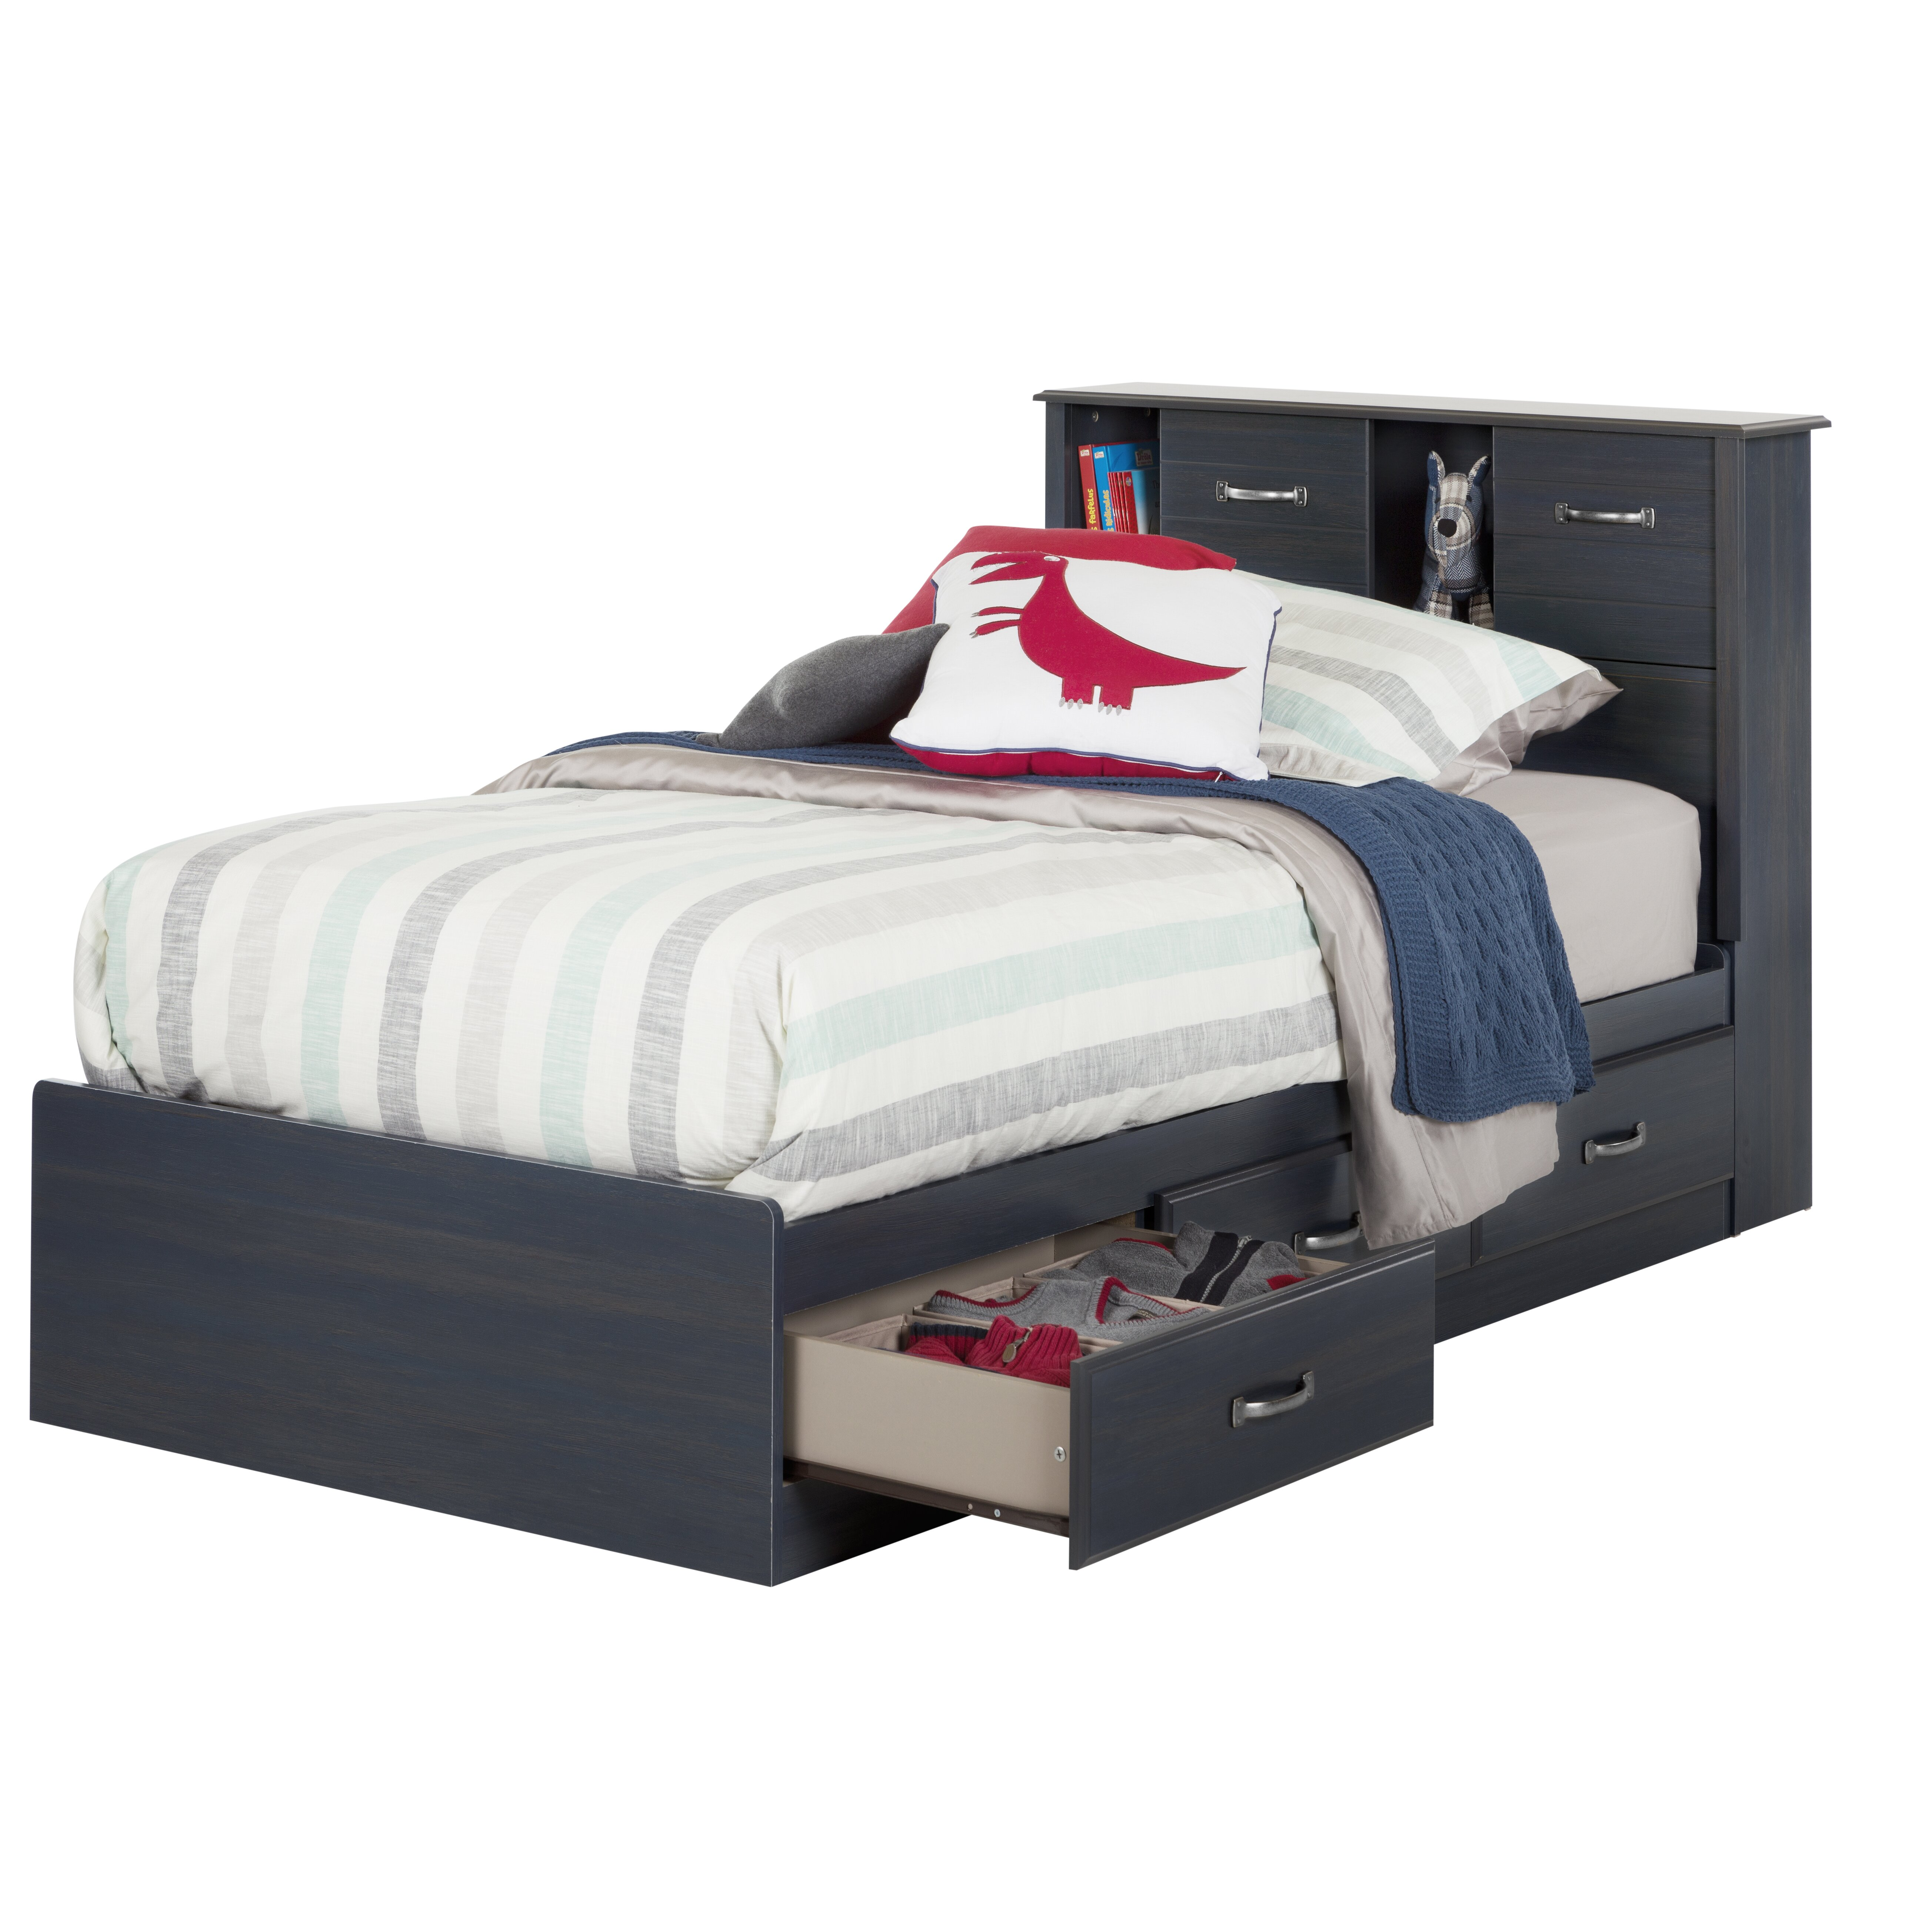 South Shore Twin Mates Bed Reviews